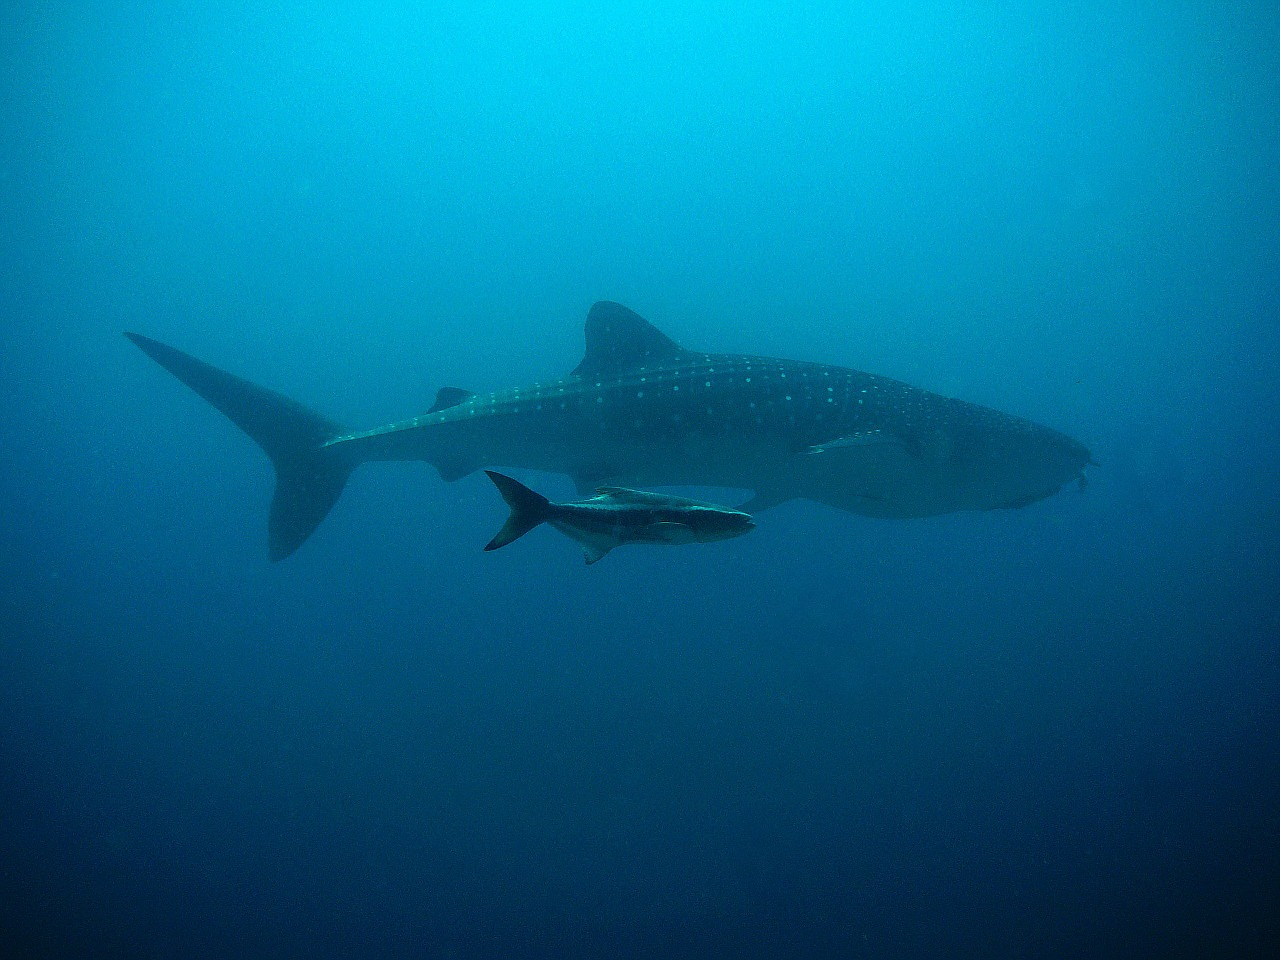 whale shark kobia divers free photo